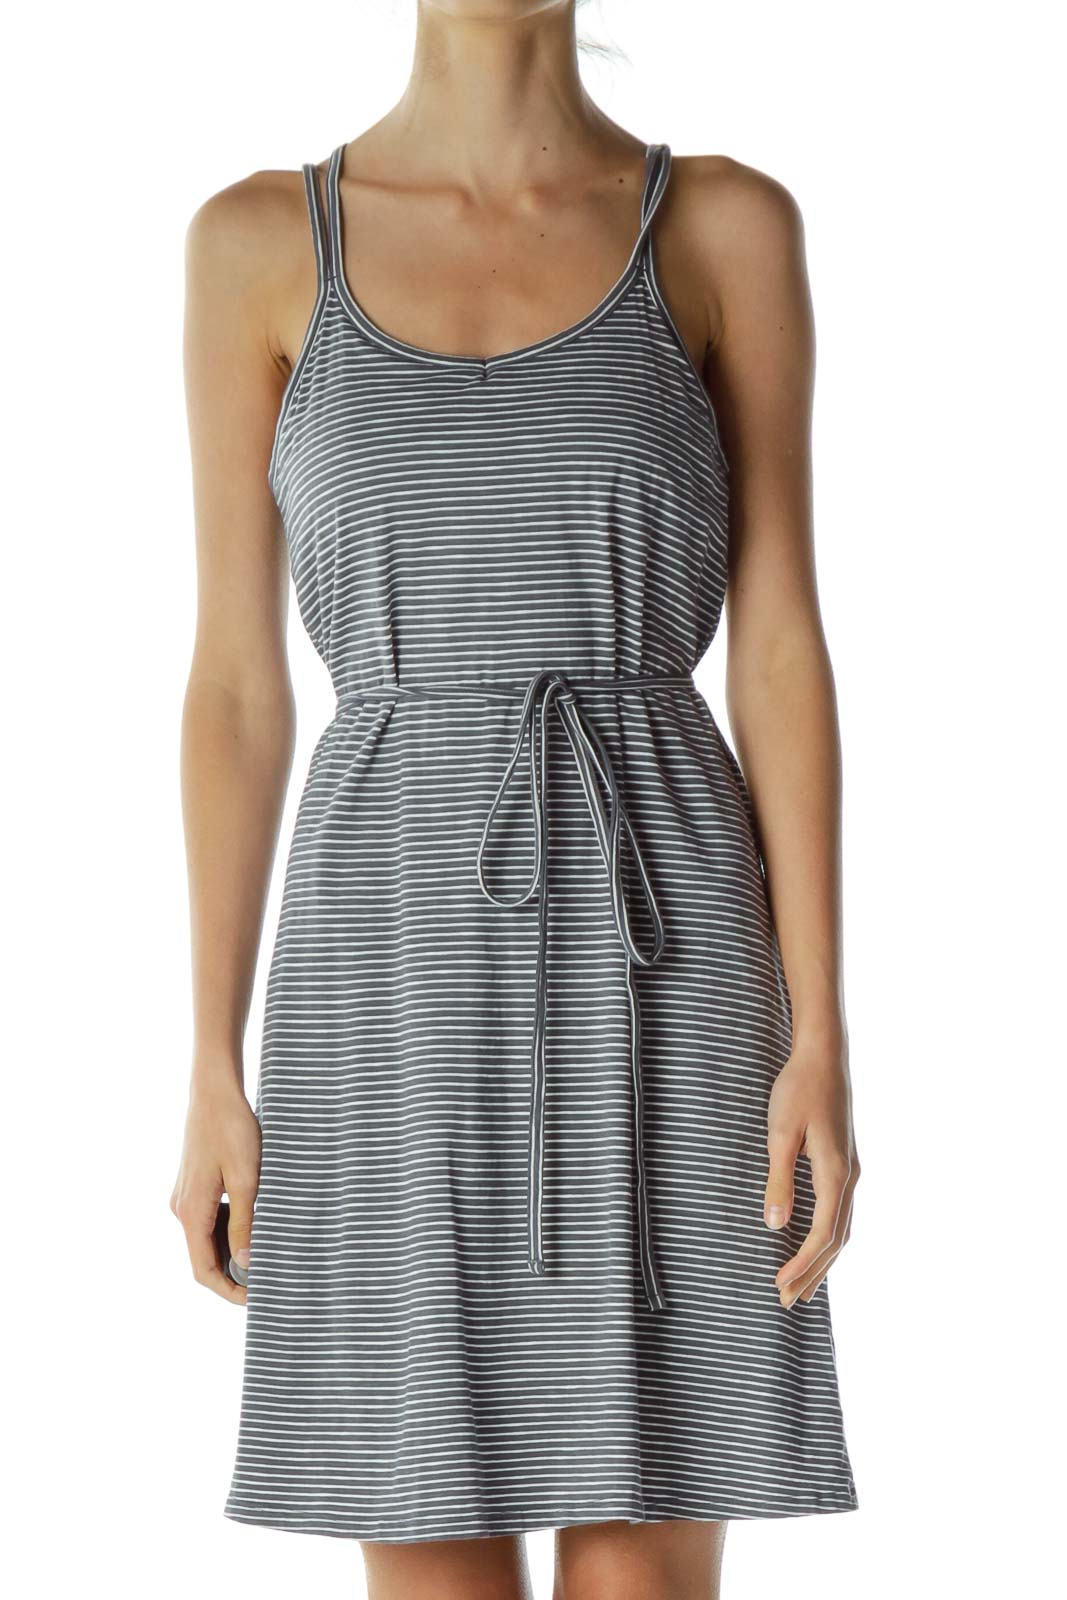 Gray White Striped Athletic Dress